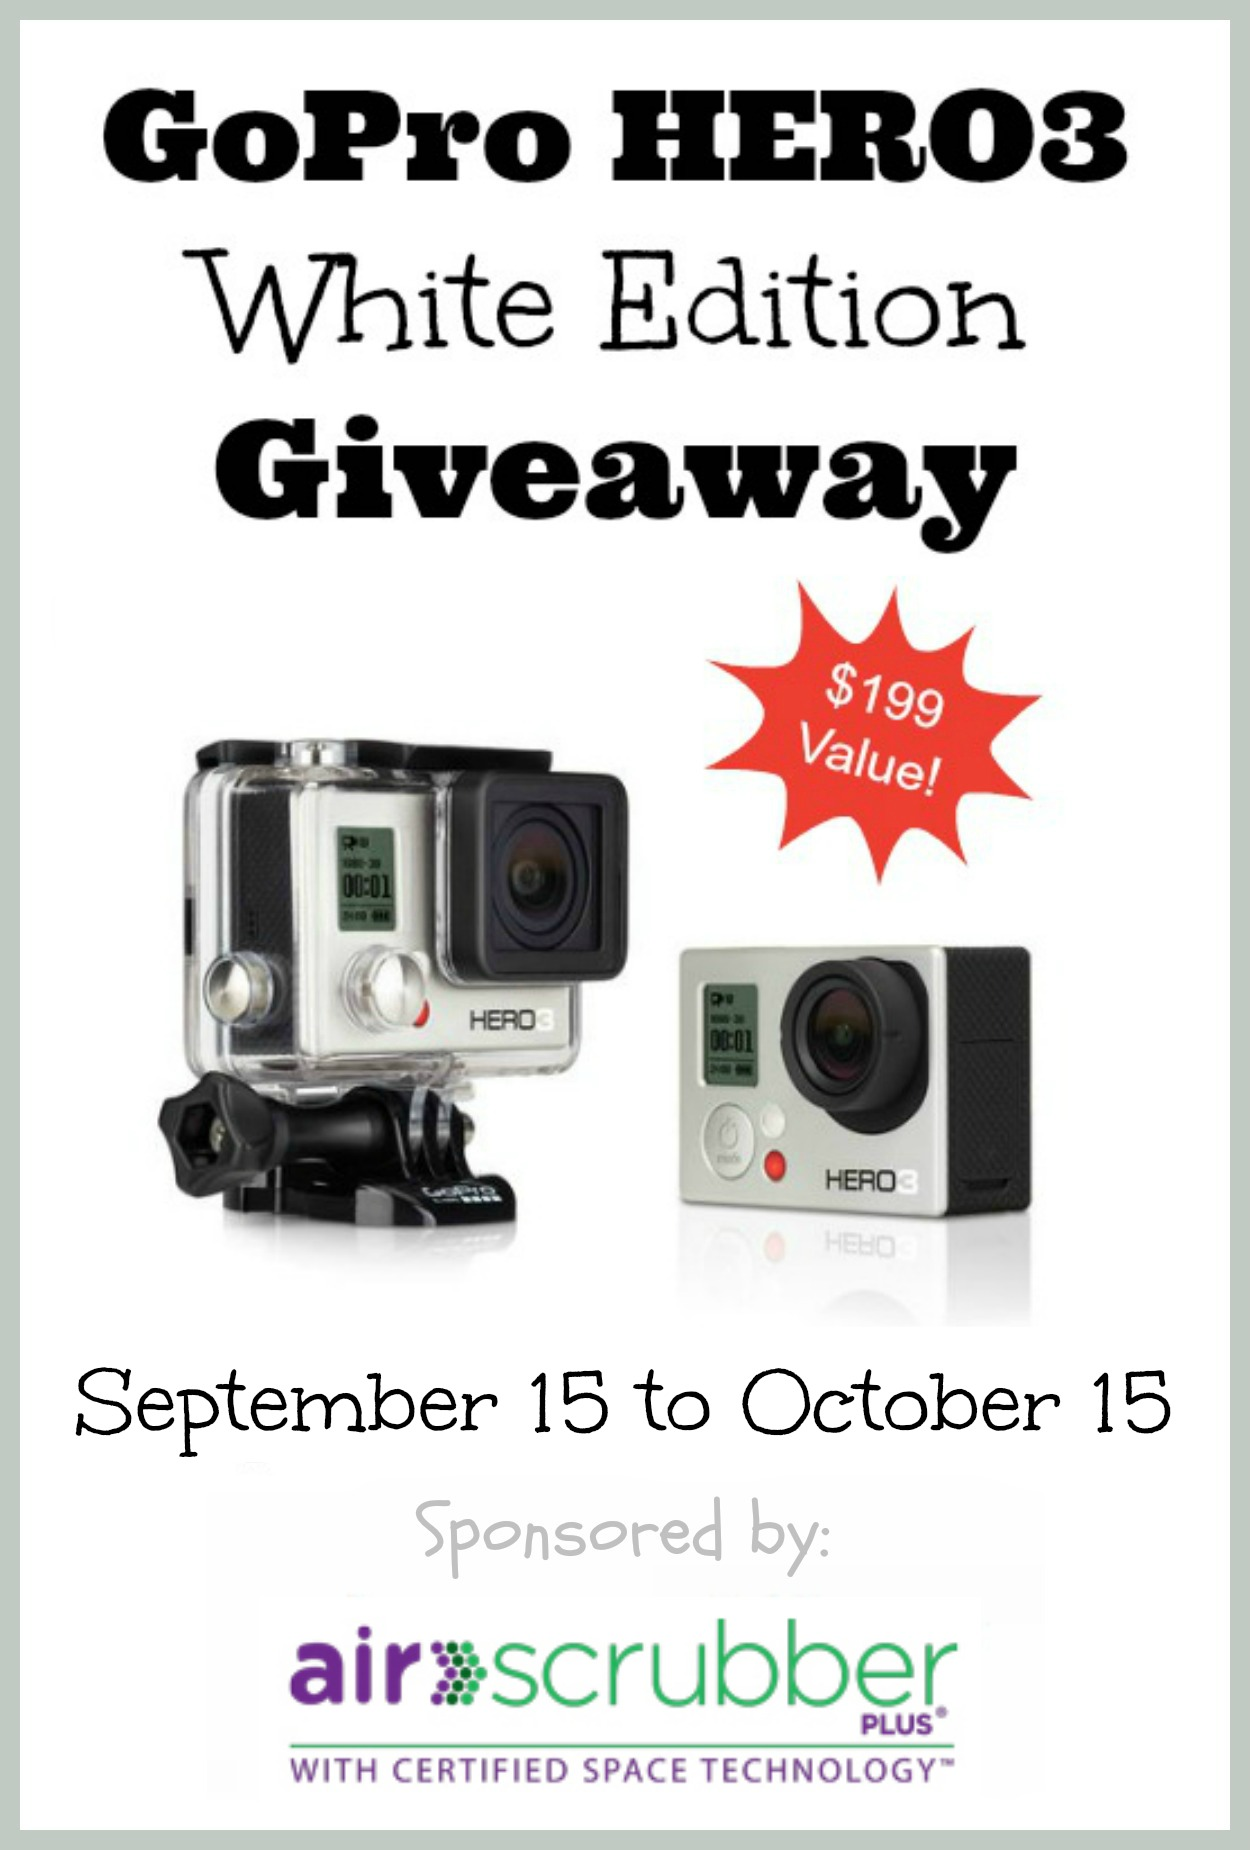 The Social Commerce Mom is participating in this GoPro Giveaway. http://heatherlopezenterprises.com/gopro-giveaway